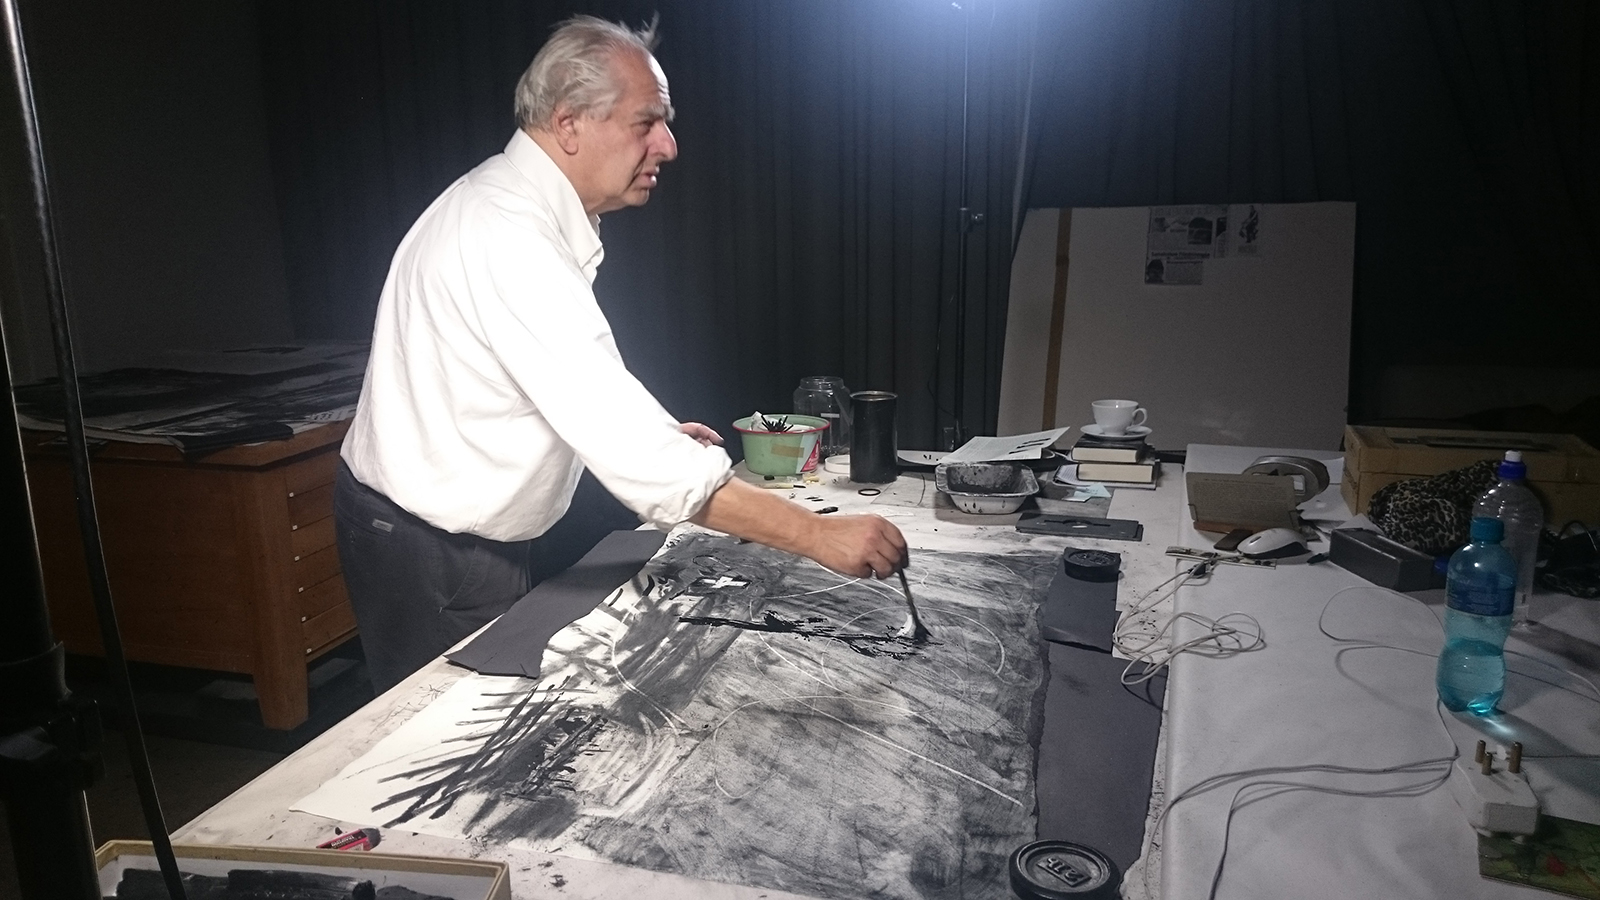 William Kentridge working at Wozzeck's charcoals | © Sabine Theunissen, courtesy of the author